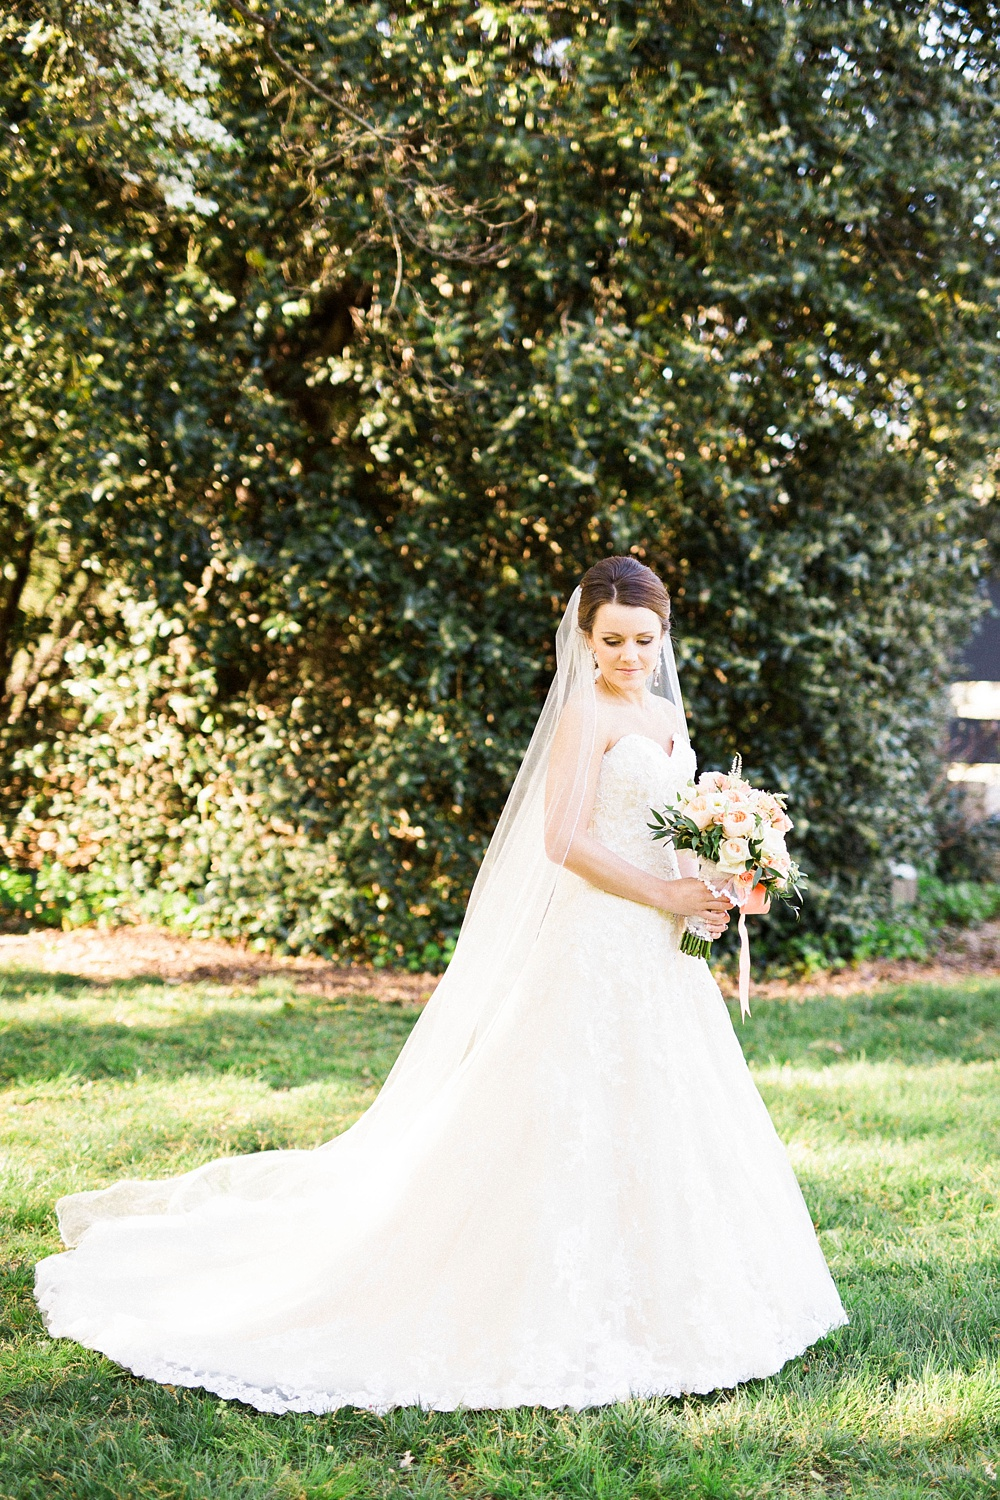 Rachael Bowman Photography-Greensboro Arboretum-Greensboro-North Carolina-Bridal Session-Photographer-Photo-_0019.jpg